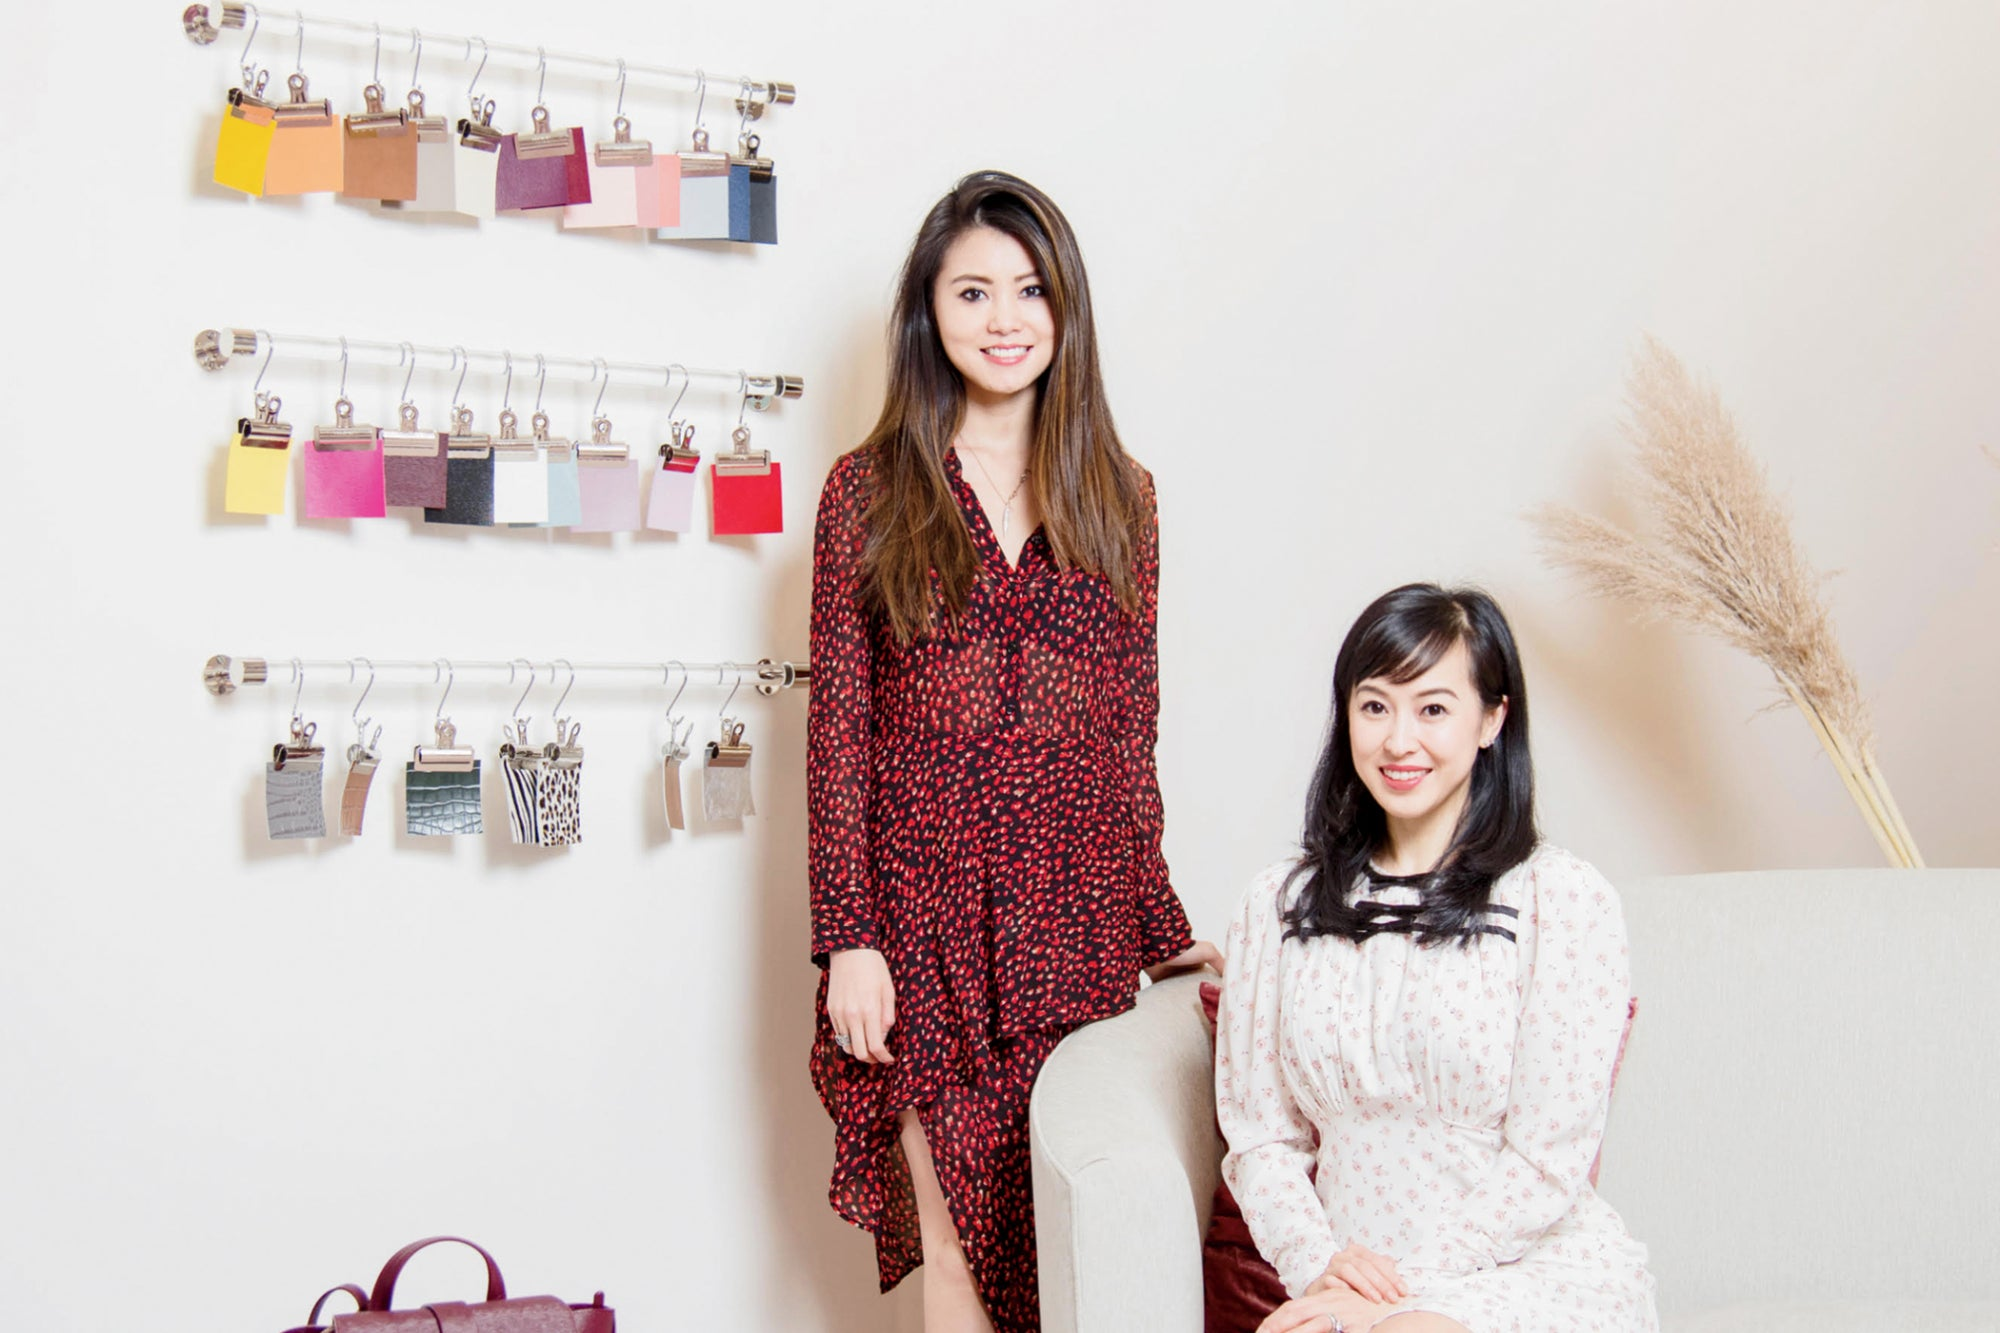 Why the Founders of Senreve Built a Fashion Brand in Silicon Valley